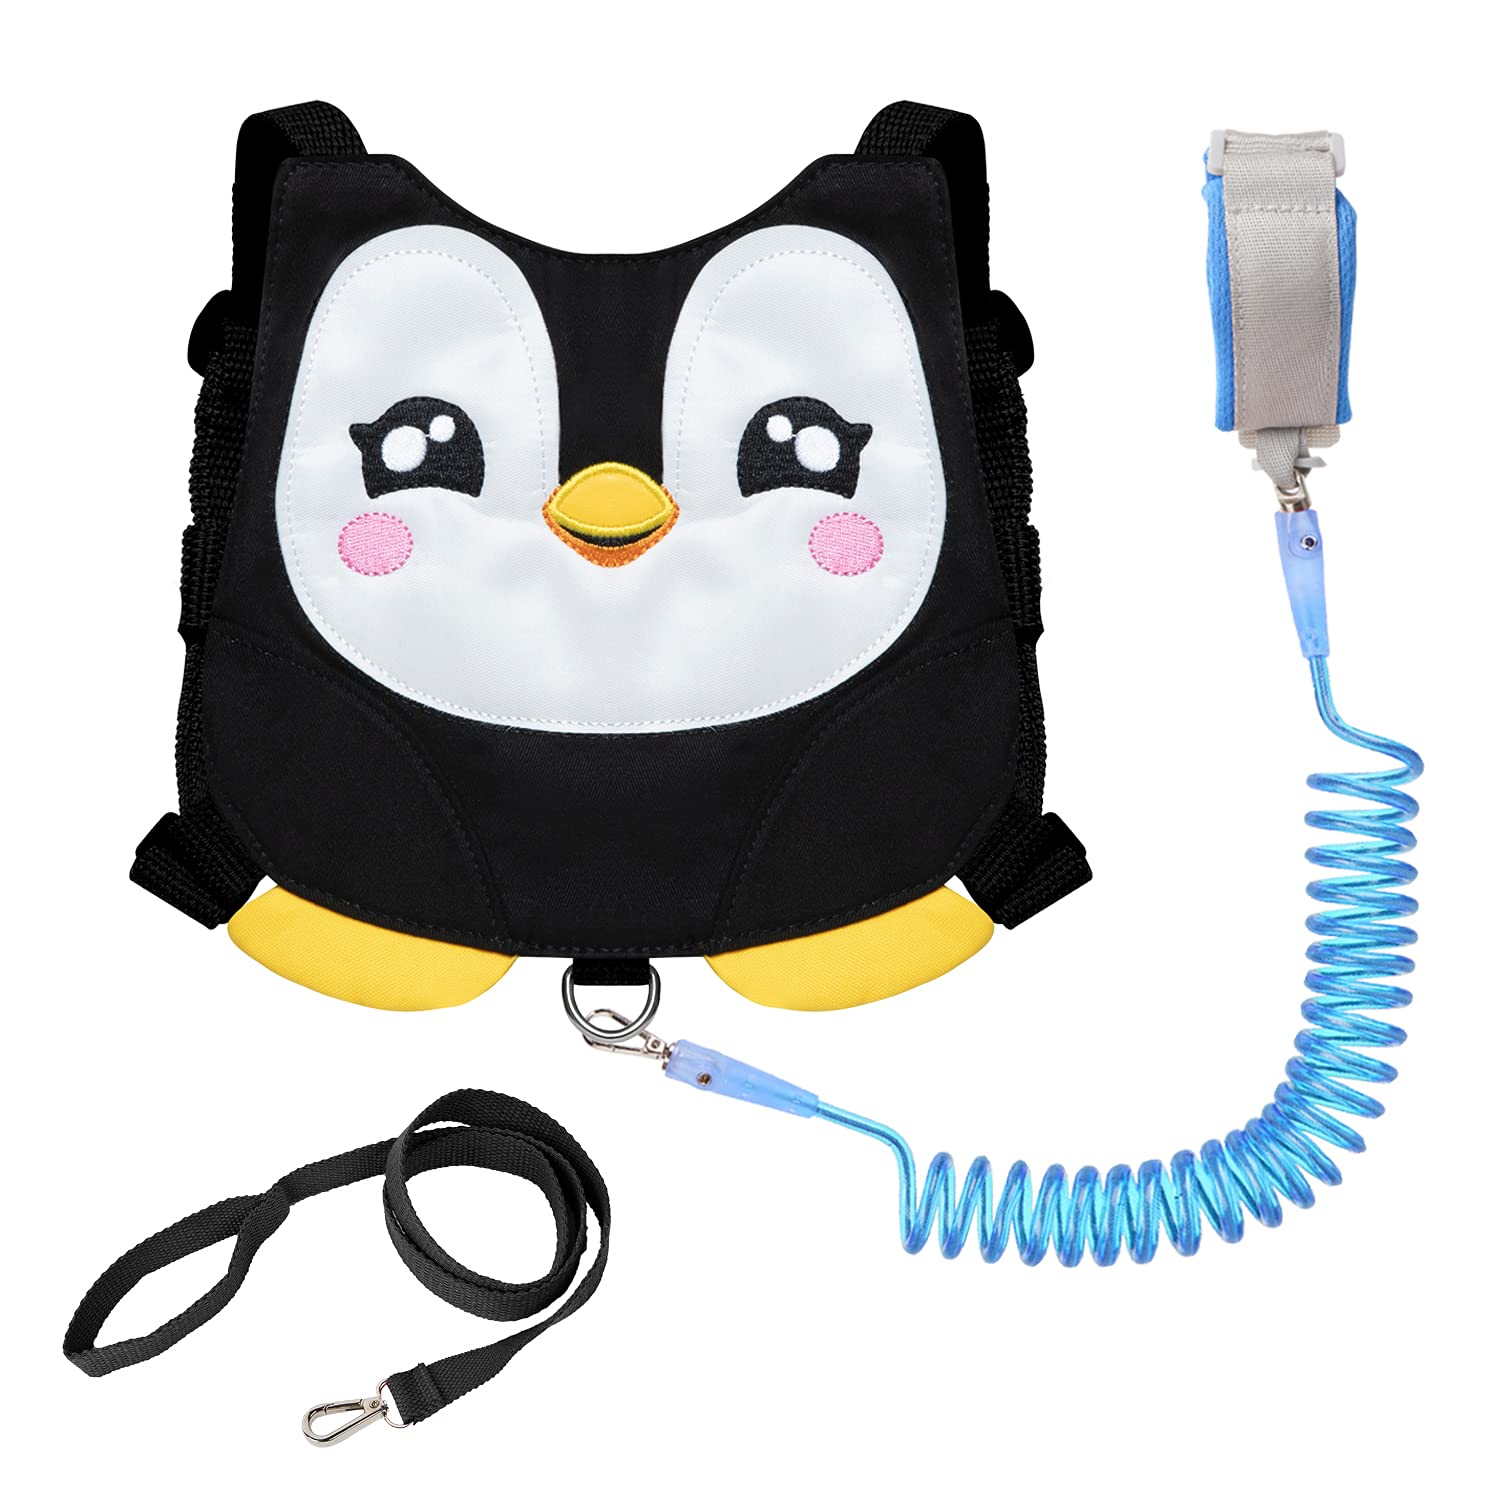 Penguin Toddler Harness with Leash Child Kid Anti-Lost Wrist-Link Leash Wristband (Black)